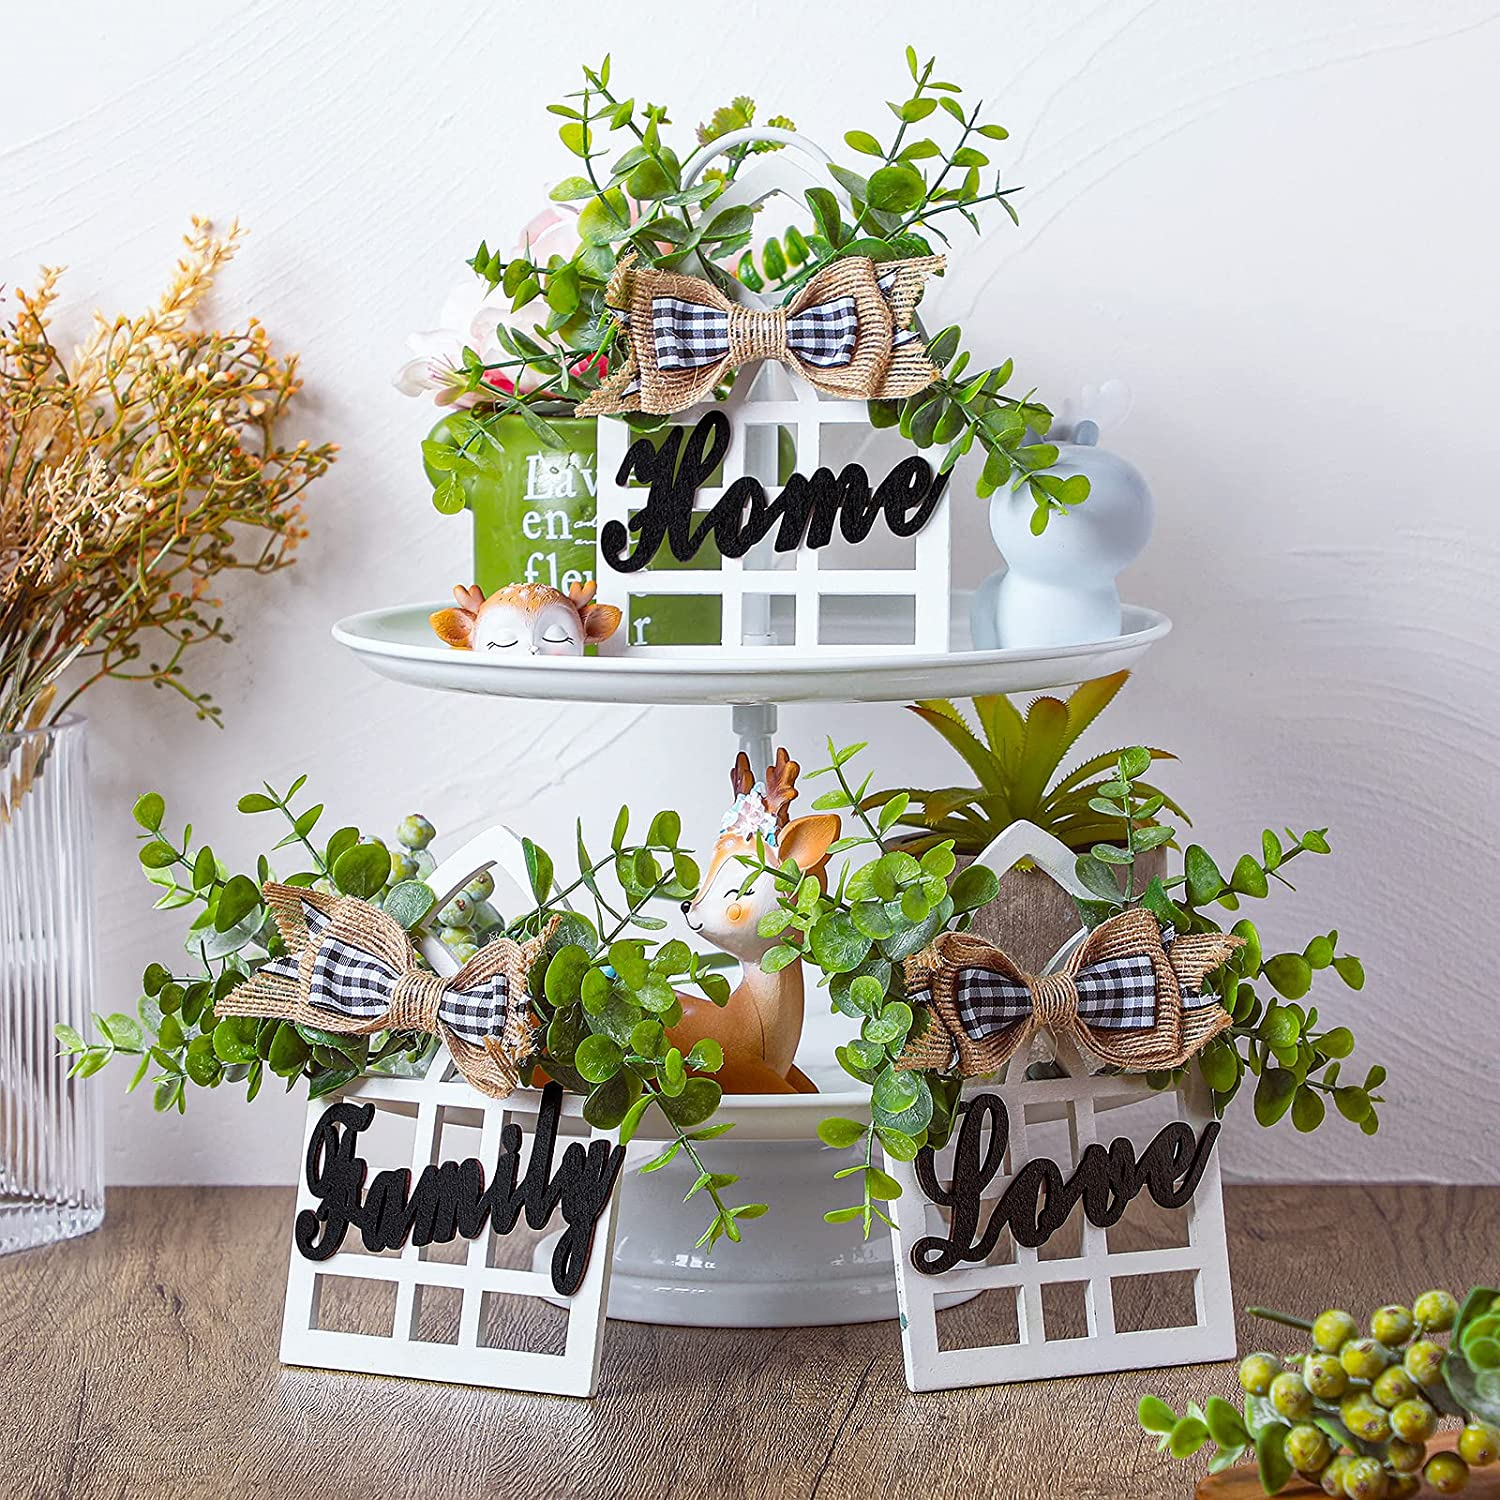 Jetec 3 Pieces Farmhouse Window Tiered Tray Decorations Cathedral Arch Window Sign Wood Home Family Love Sign Decor Farmhouse Window Decoration for Tiered Tray Shelf Table Counter